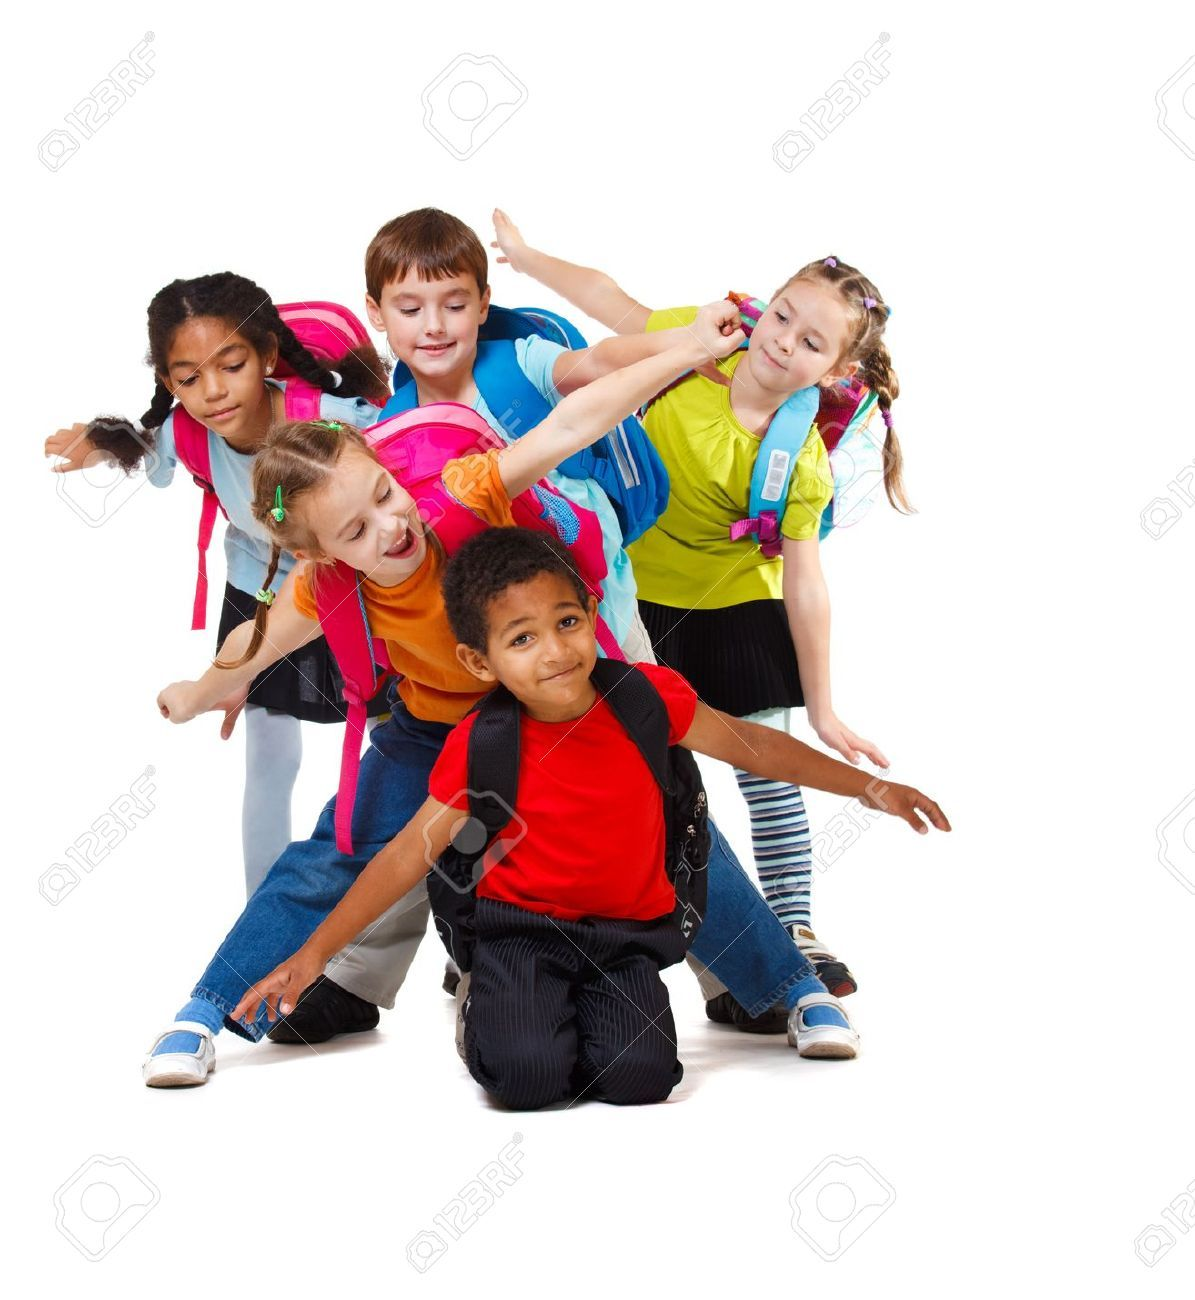 14505957 group of school aged kids with backpacks - School Pictures For Kids